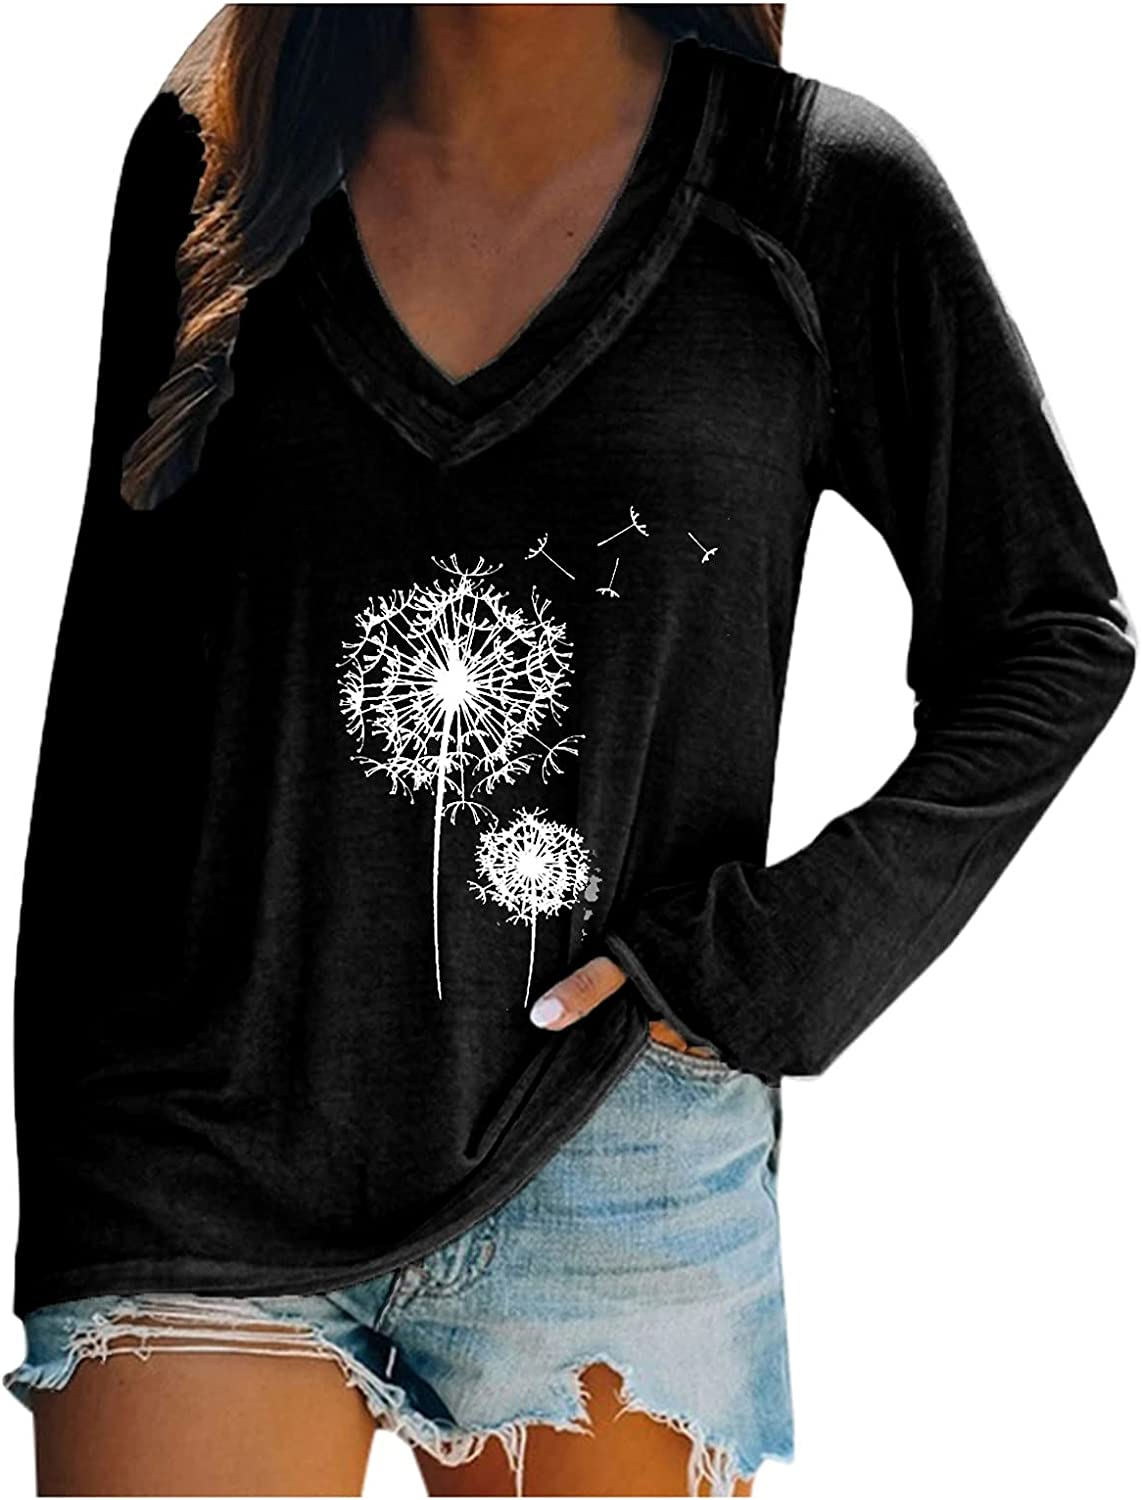 Dandelion Long Sleeve Shirts for Women Autumn Casual Heart Cows Graphic Tee V Neck Fashion Tops Blouses T Shirt